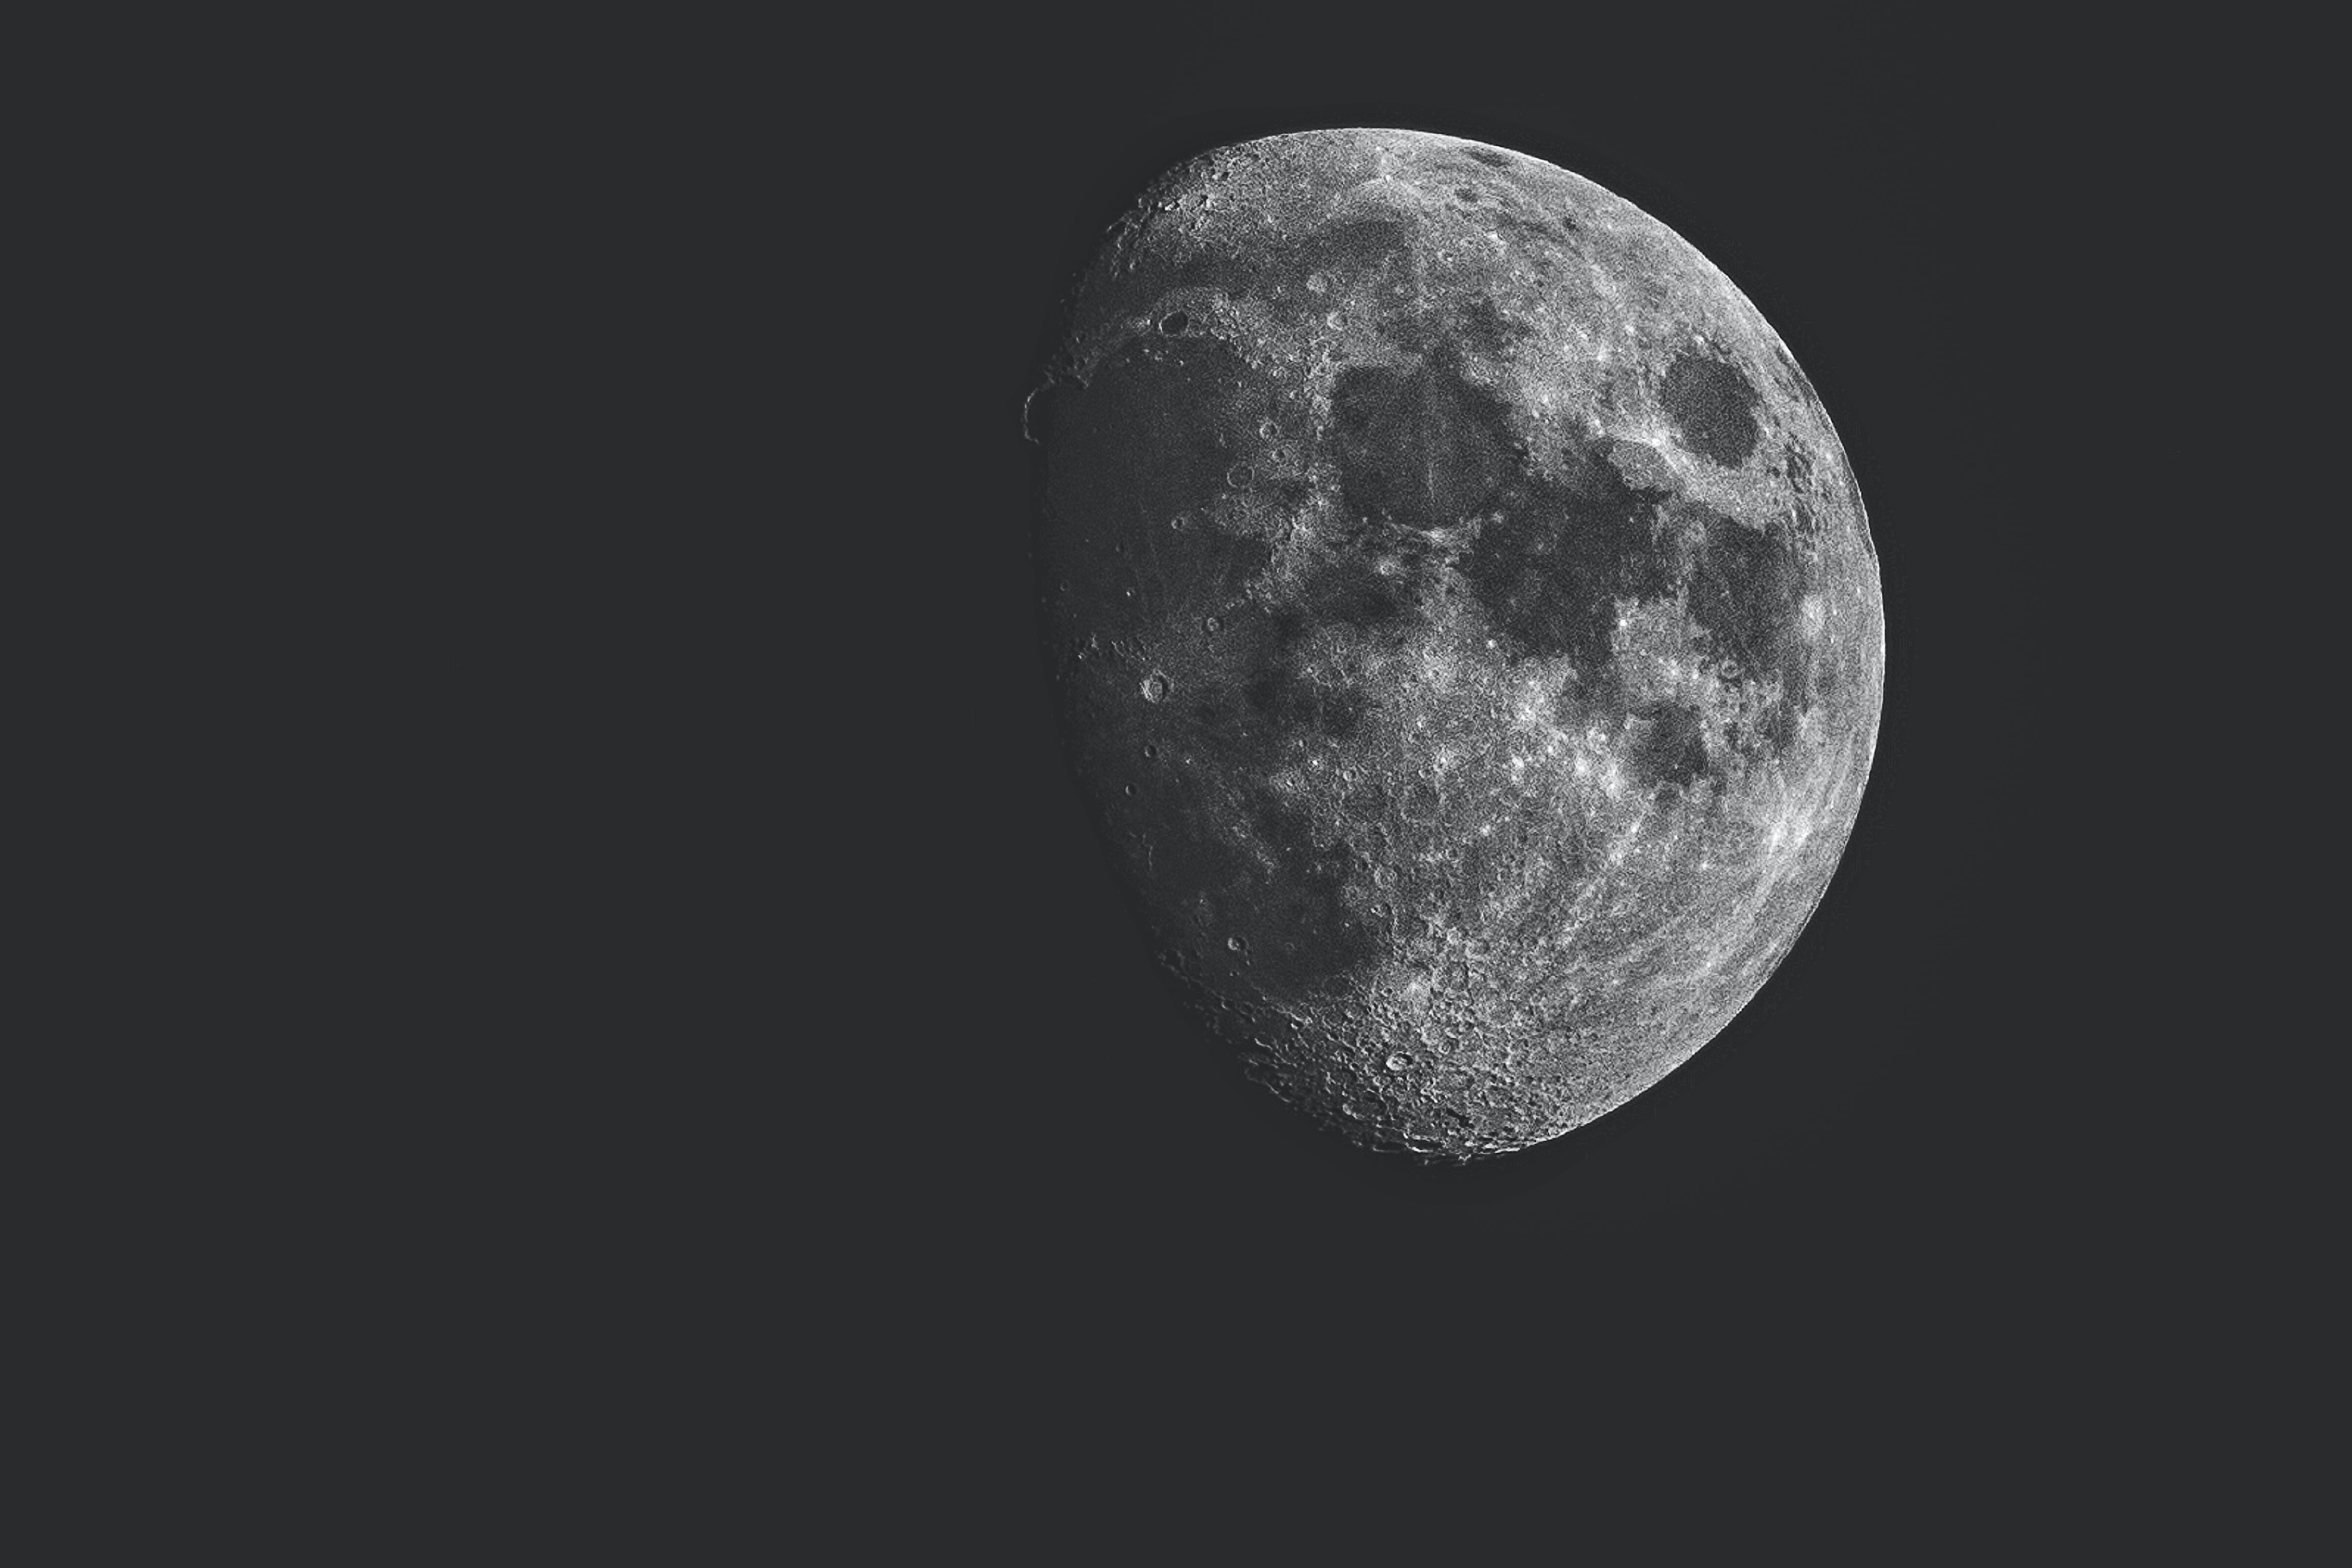 Close-up of the moon with lunar craters visible, as seen from Nove